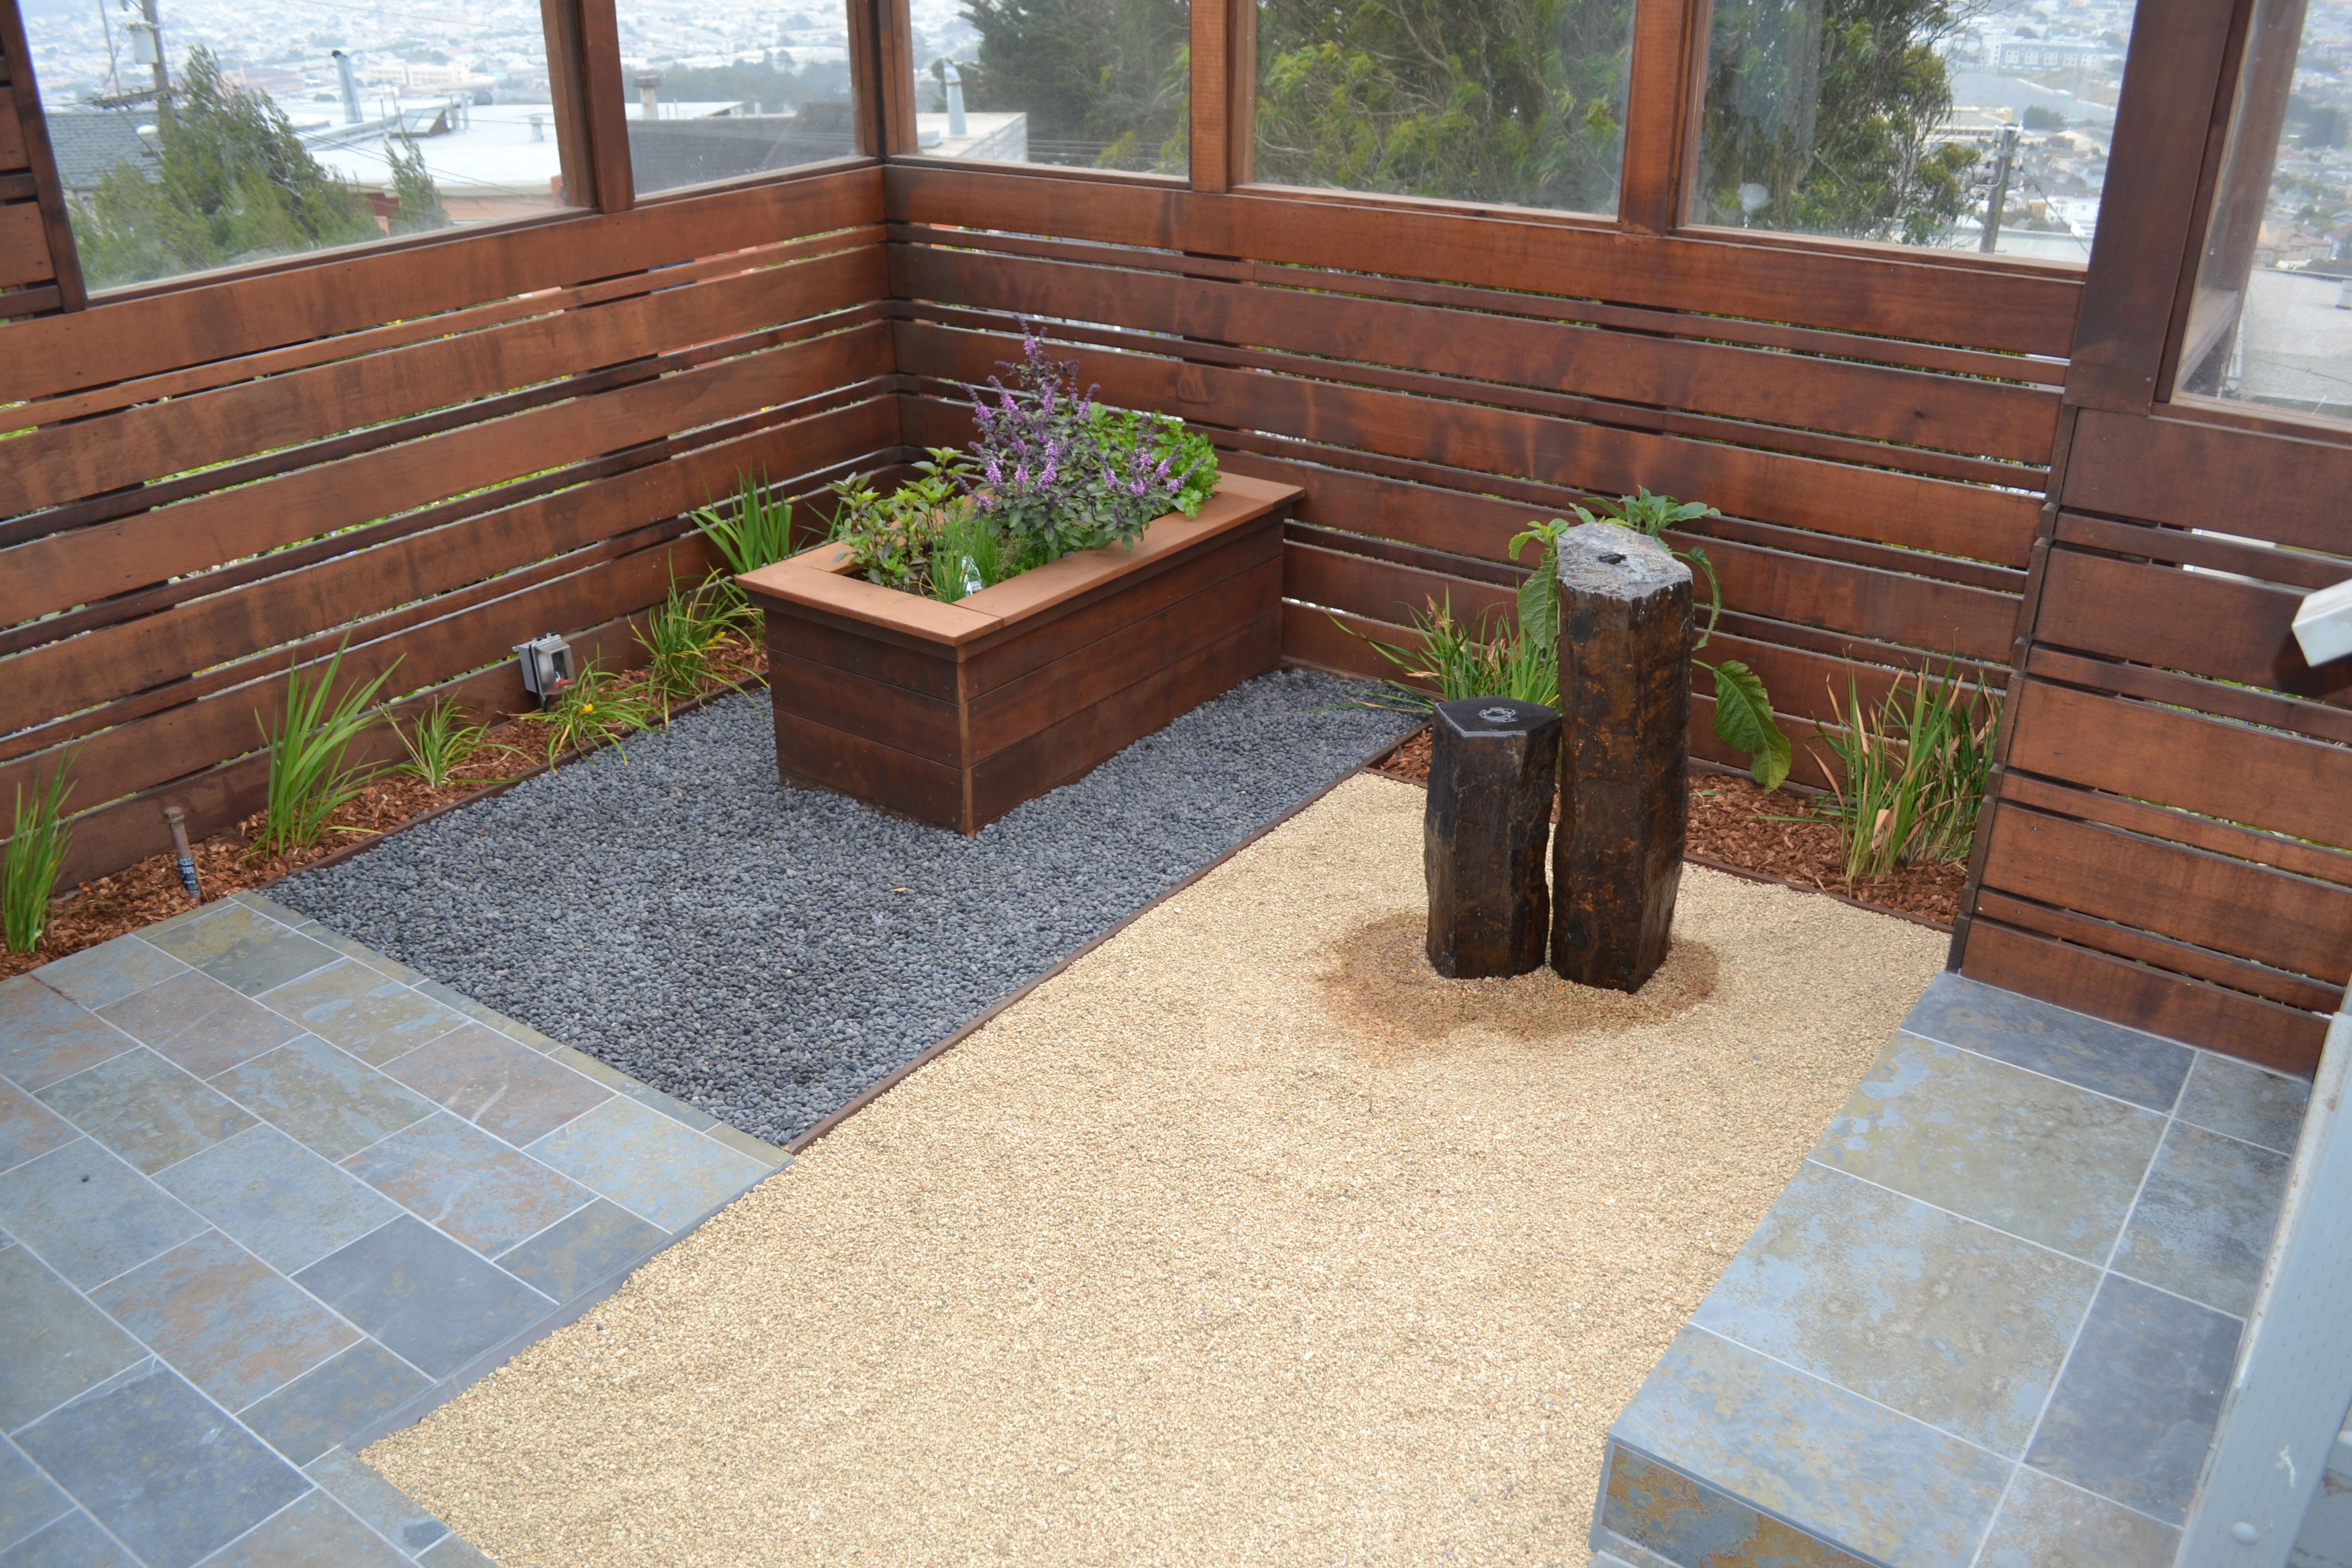 Modern Zen Garden Drought Tolerant Landscape Experts And Gardening Maintenance In The San Francisco Millbrae